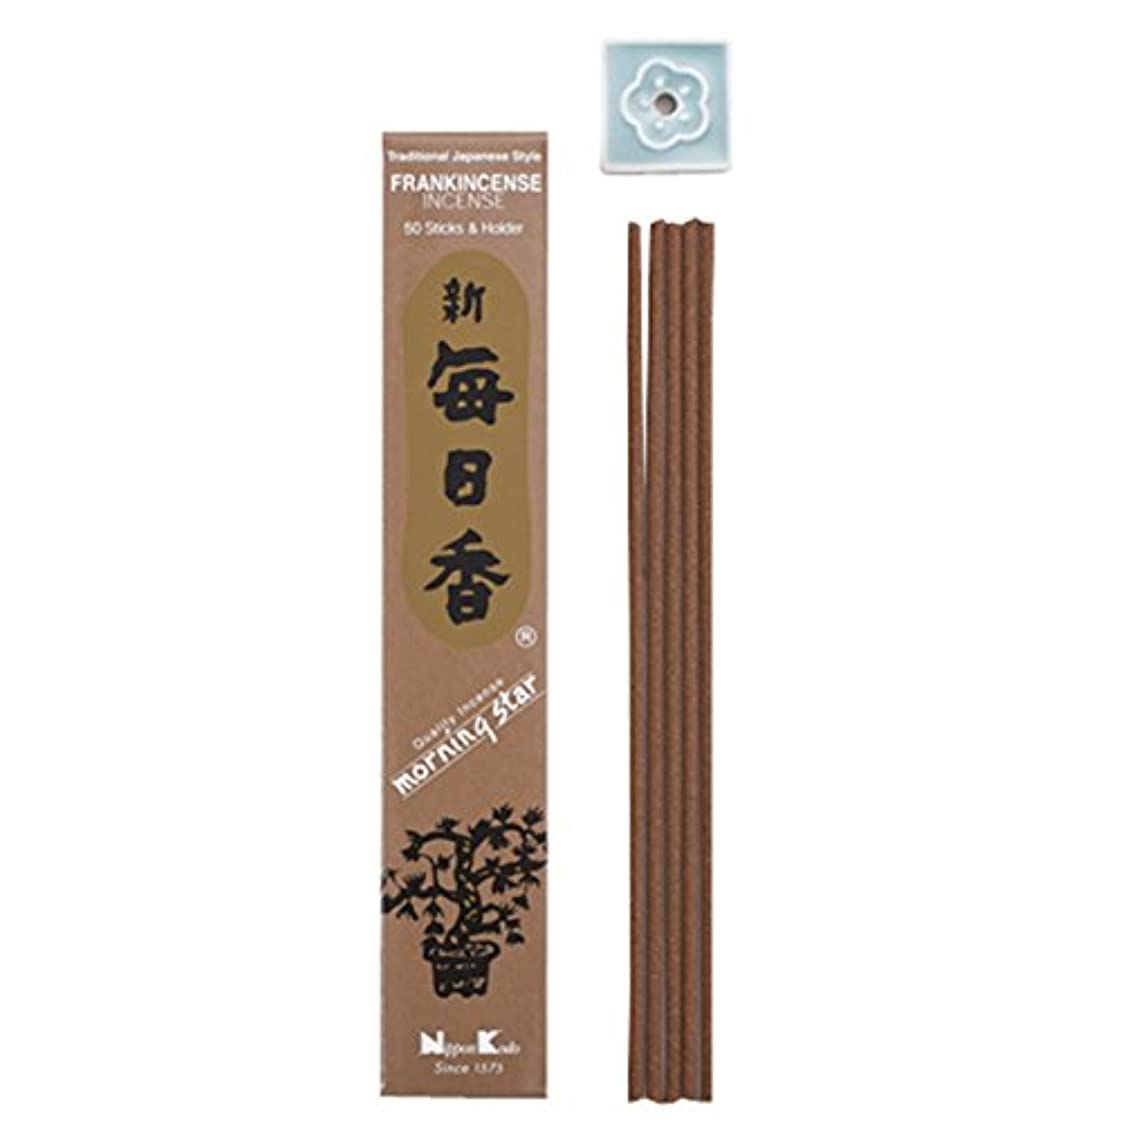 時領域入札Morning Star Japanese Incense Sticks Frankincense 50 Sticks &ホルダー'